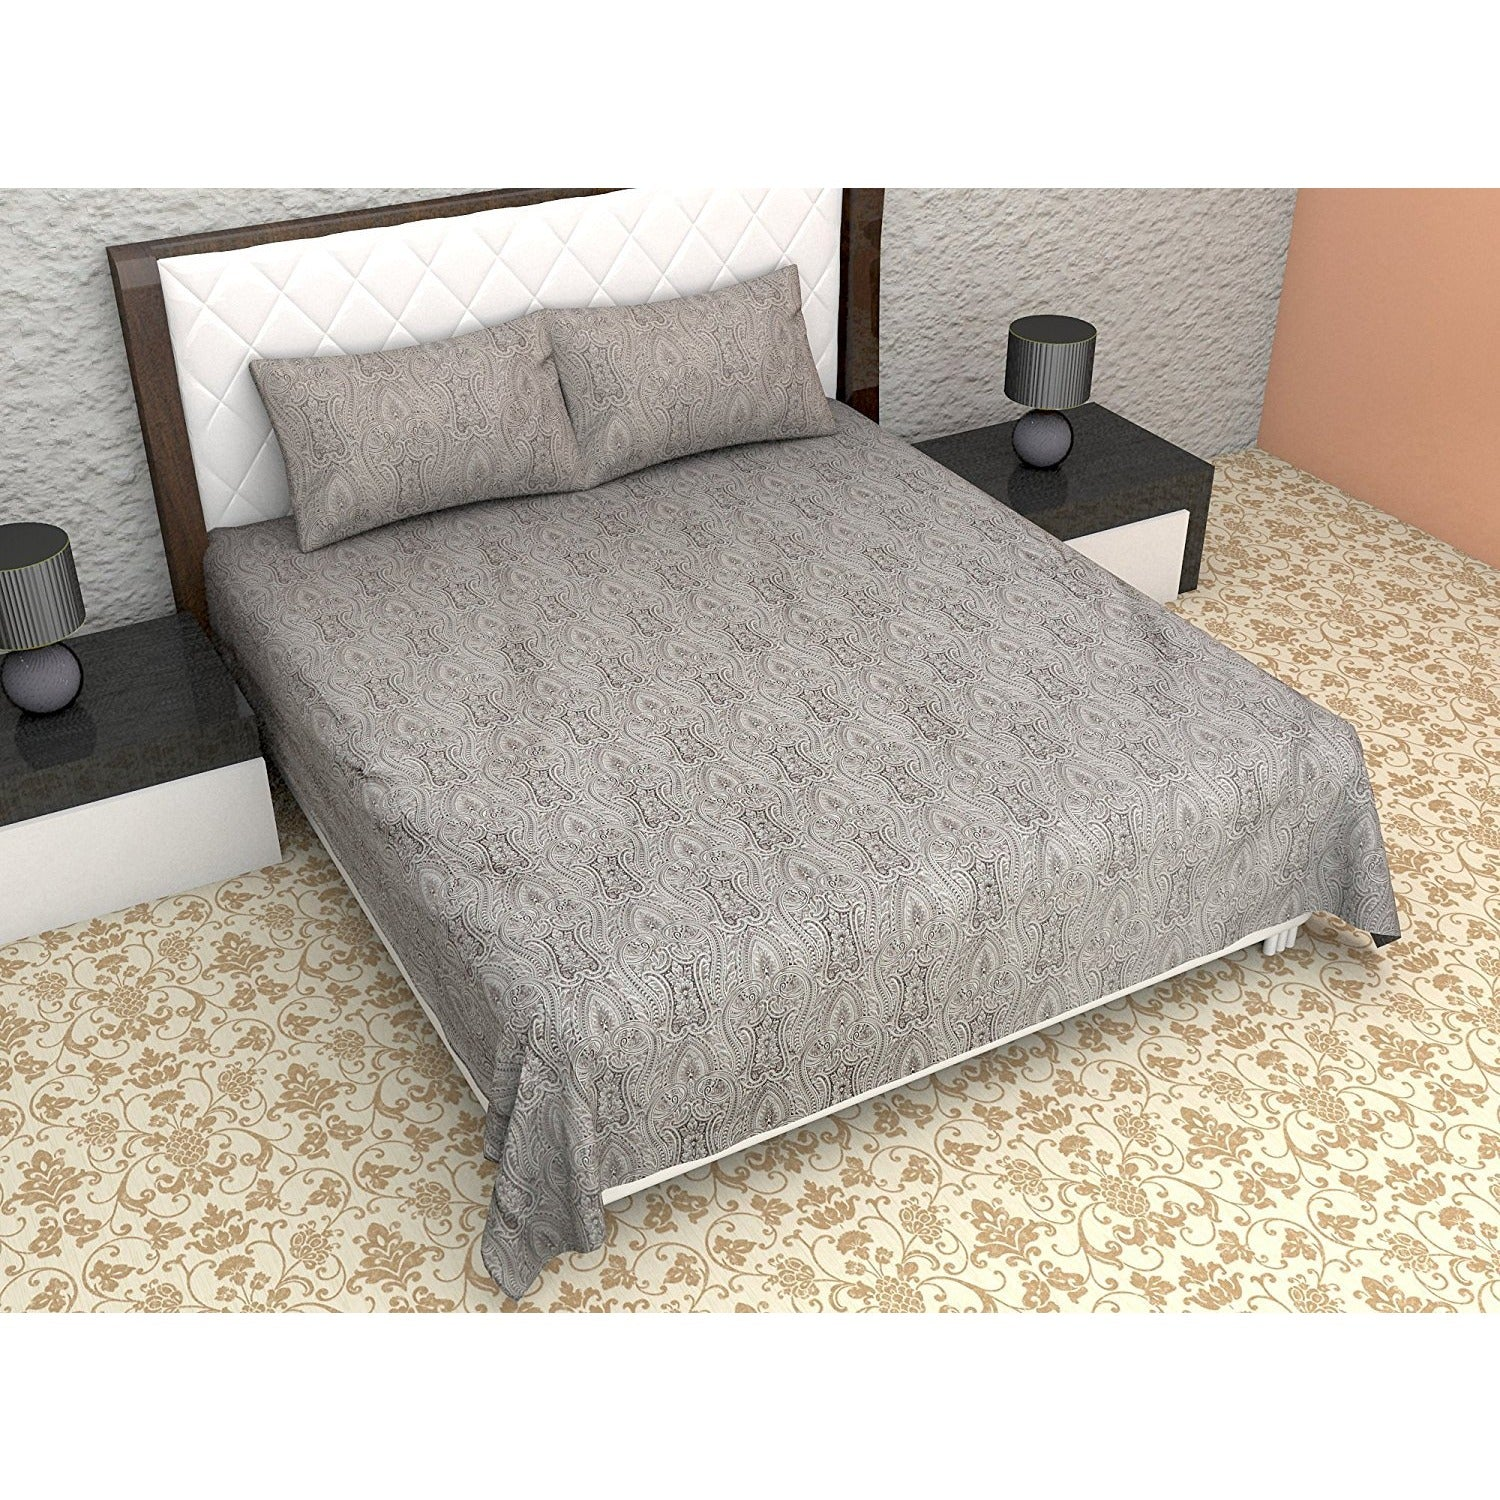 Linenwalas Bedsheets Double   Printed Cotton   300TC With 2 Pillow Covers